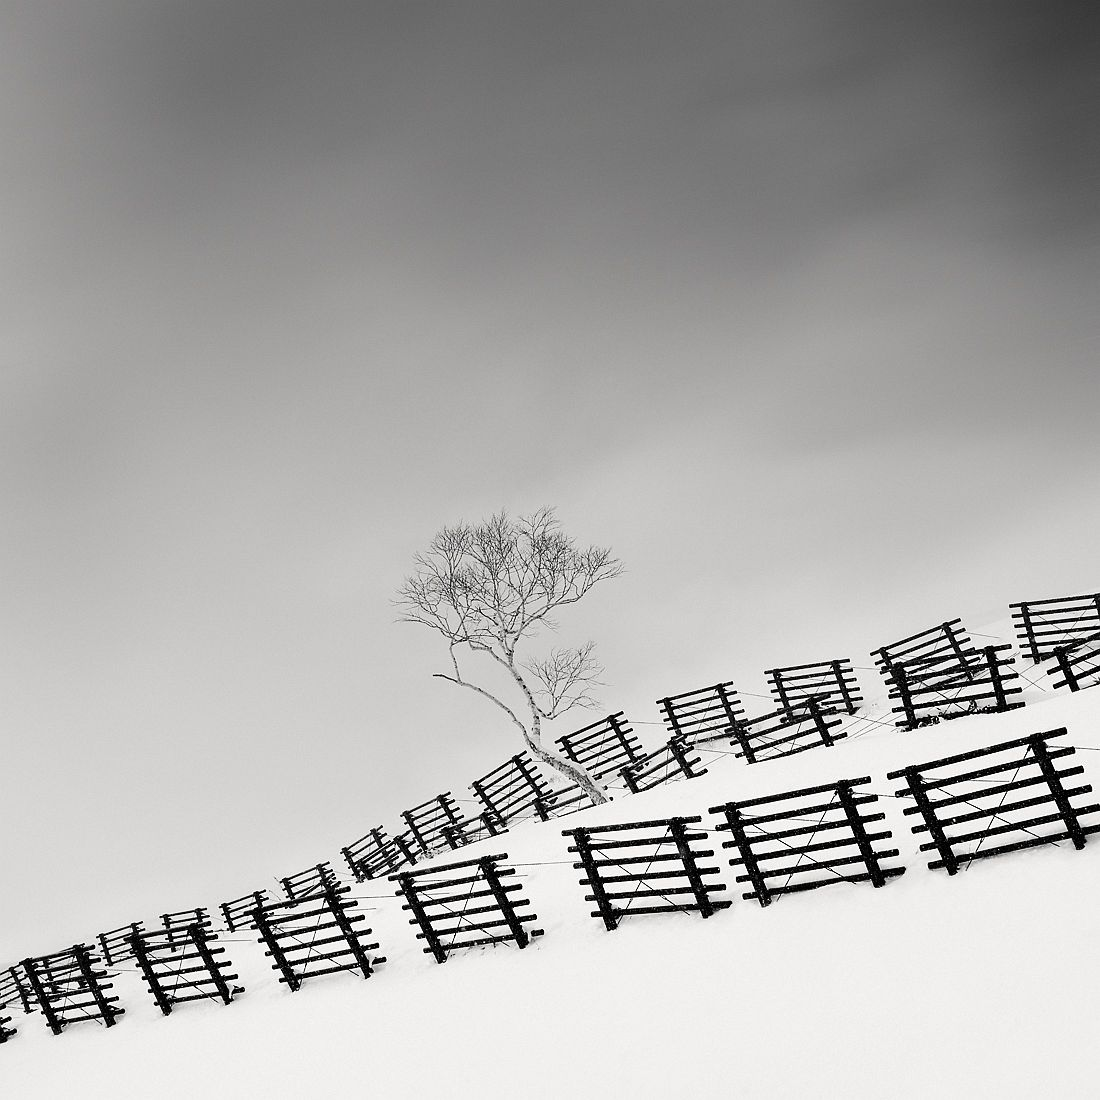 © Olivier Robert : Snow Fences / MonoVisions Photography Awards 2018 winner